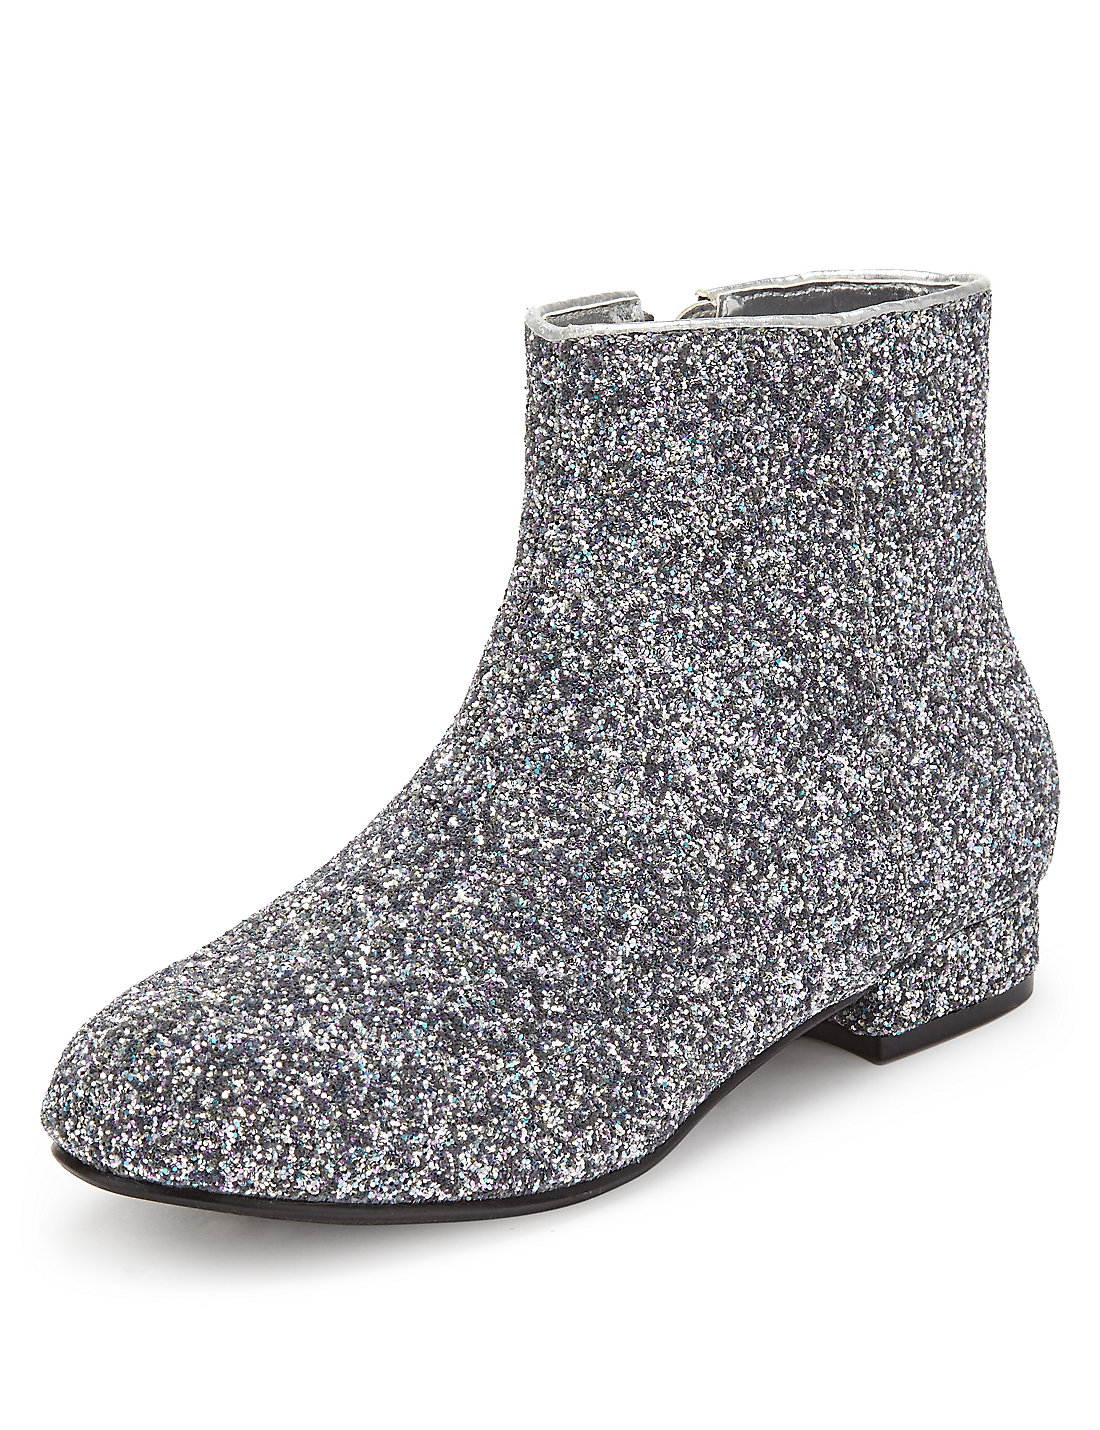 Glitter Effect Ankle Boots | M&S